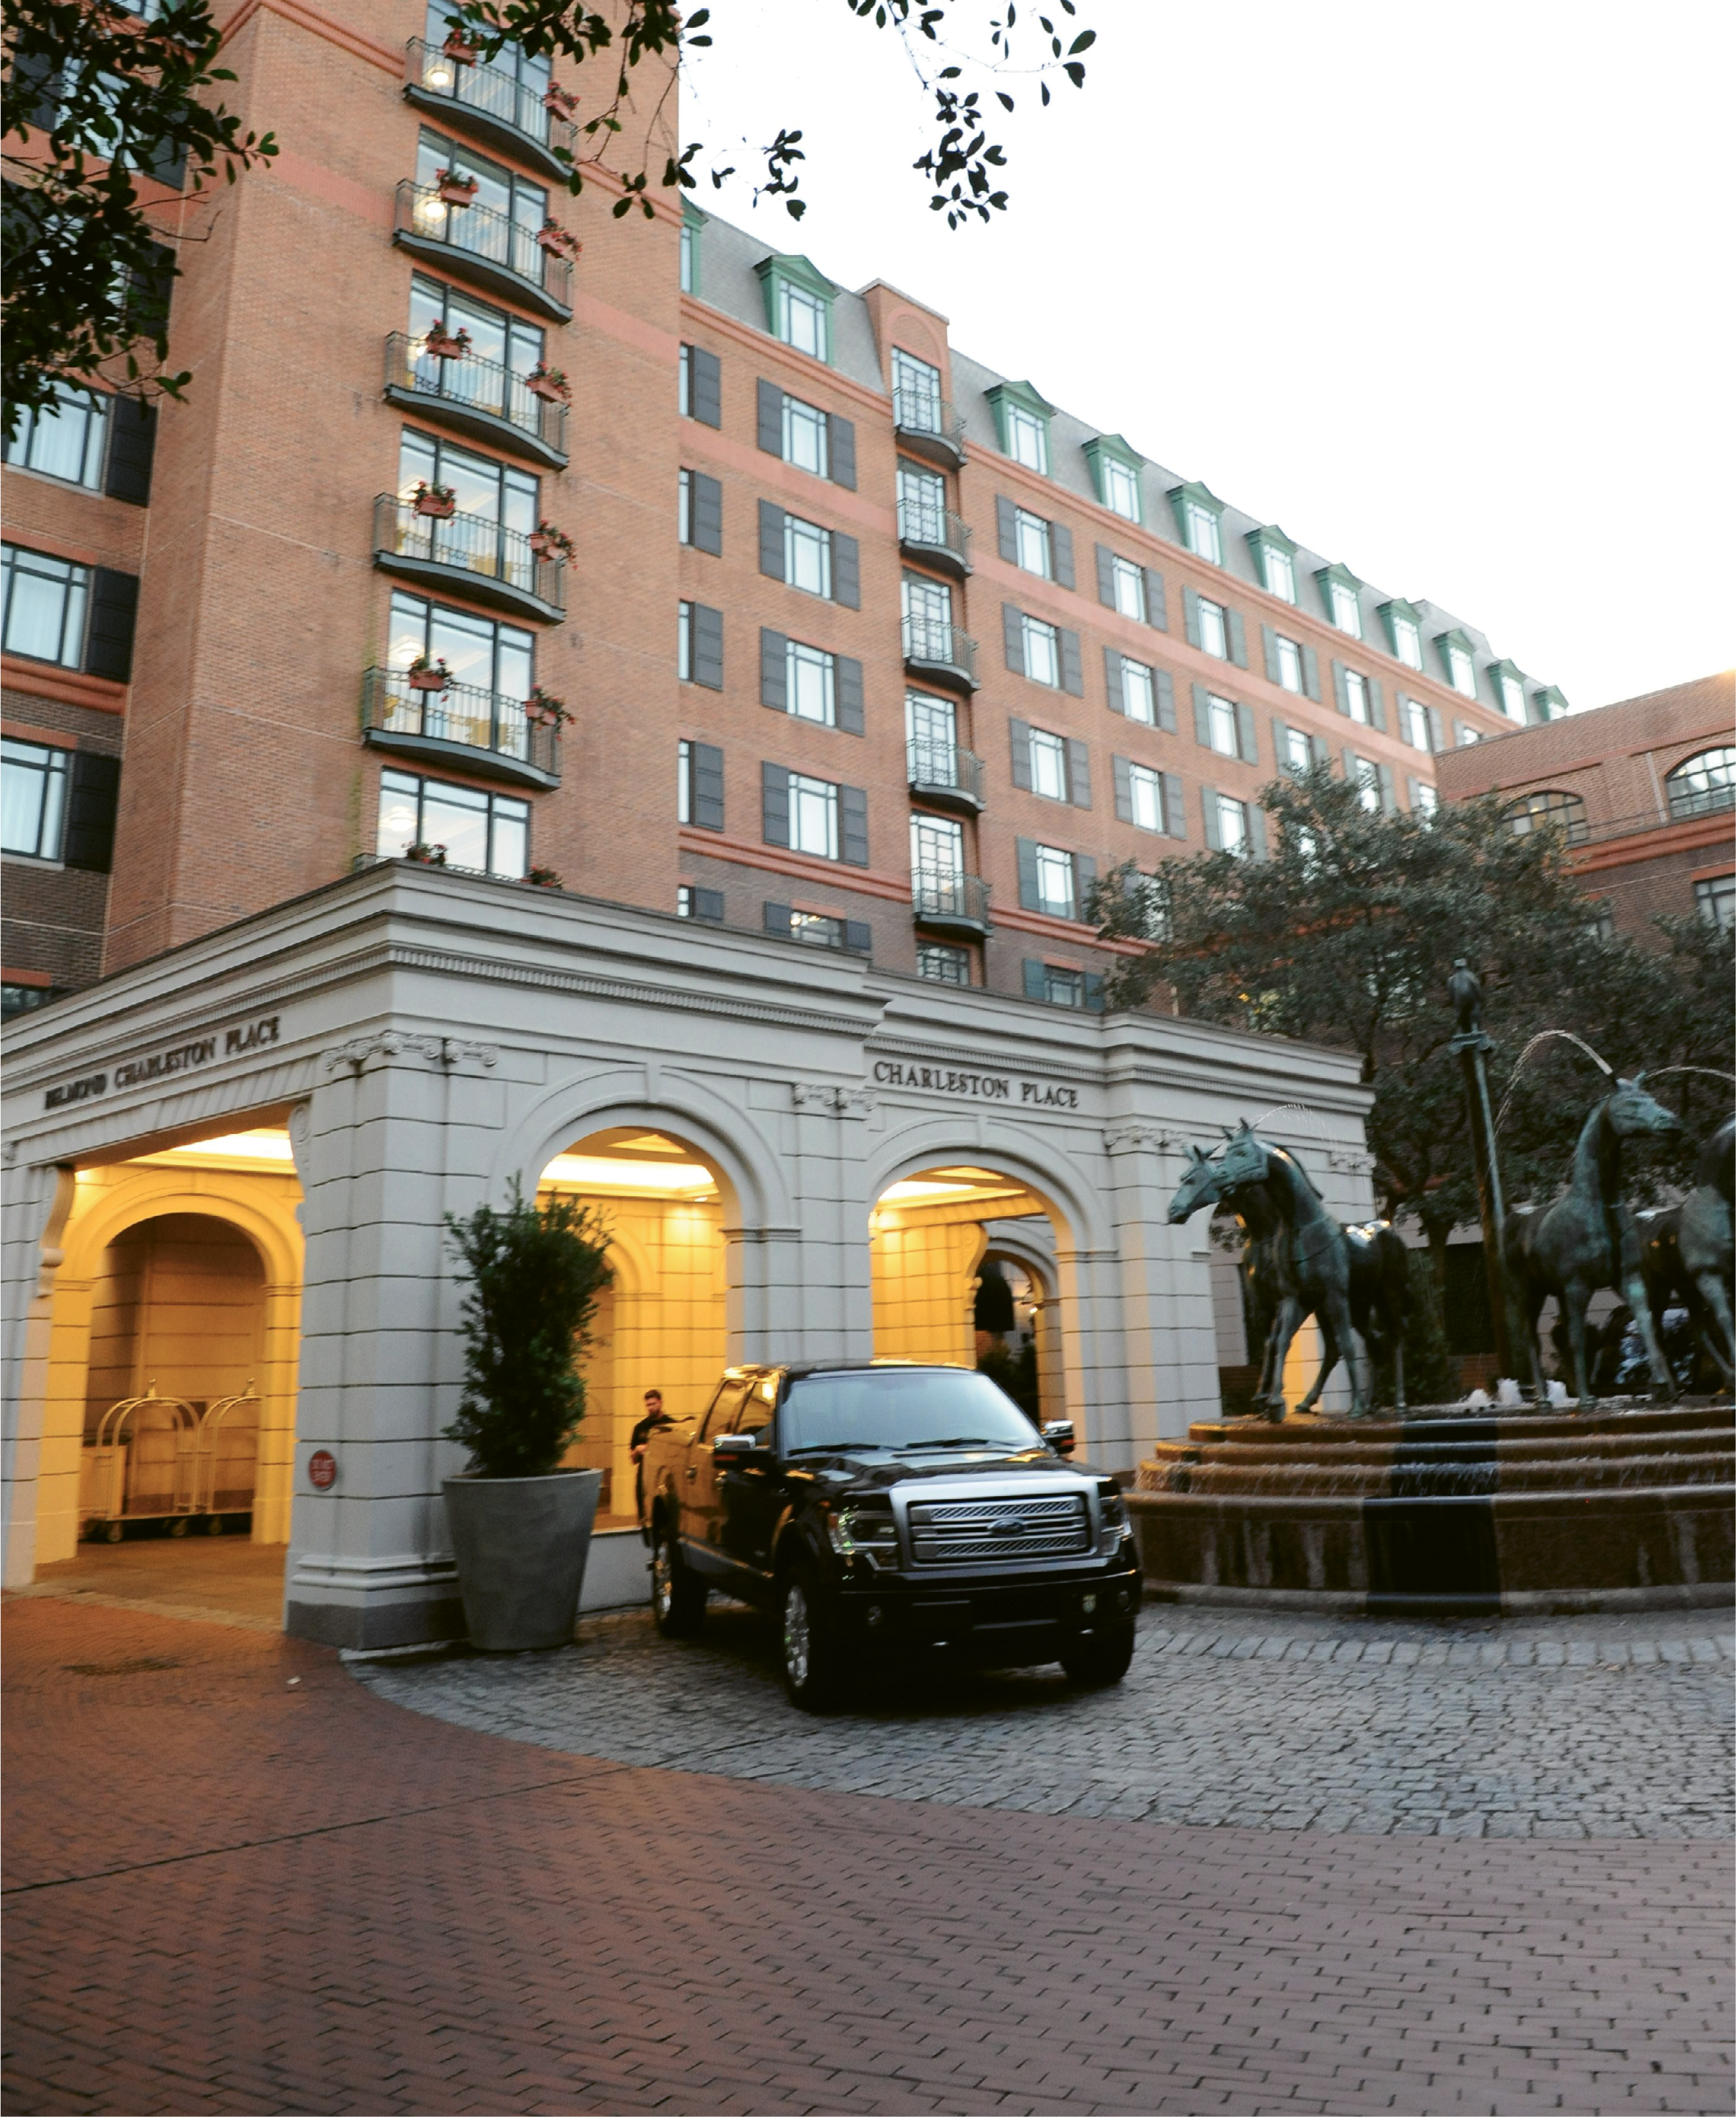 Charleston Place, now under the global Belmond brand, celebrated its 30th anniversary last year, completing renovations on all of its guest rooms as well as the Thoroughbred Club and adding more amenities, such as the new pub, Meeting at Market.